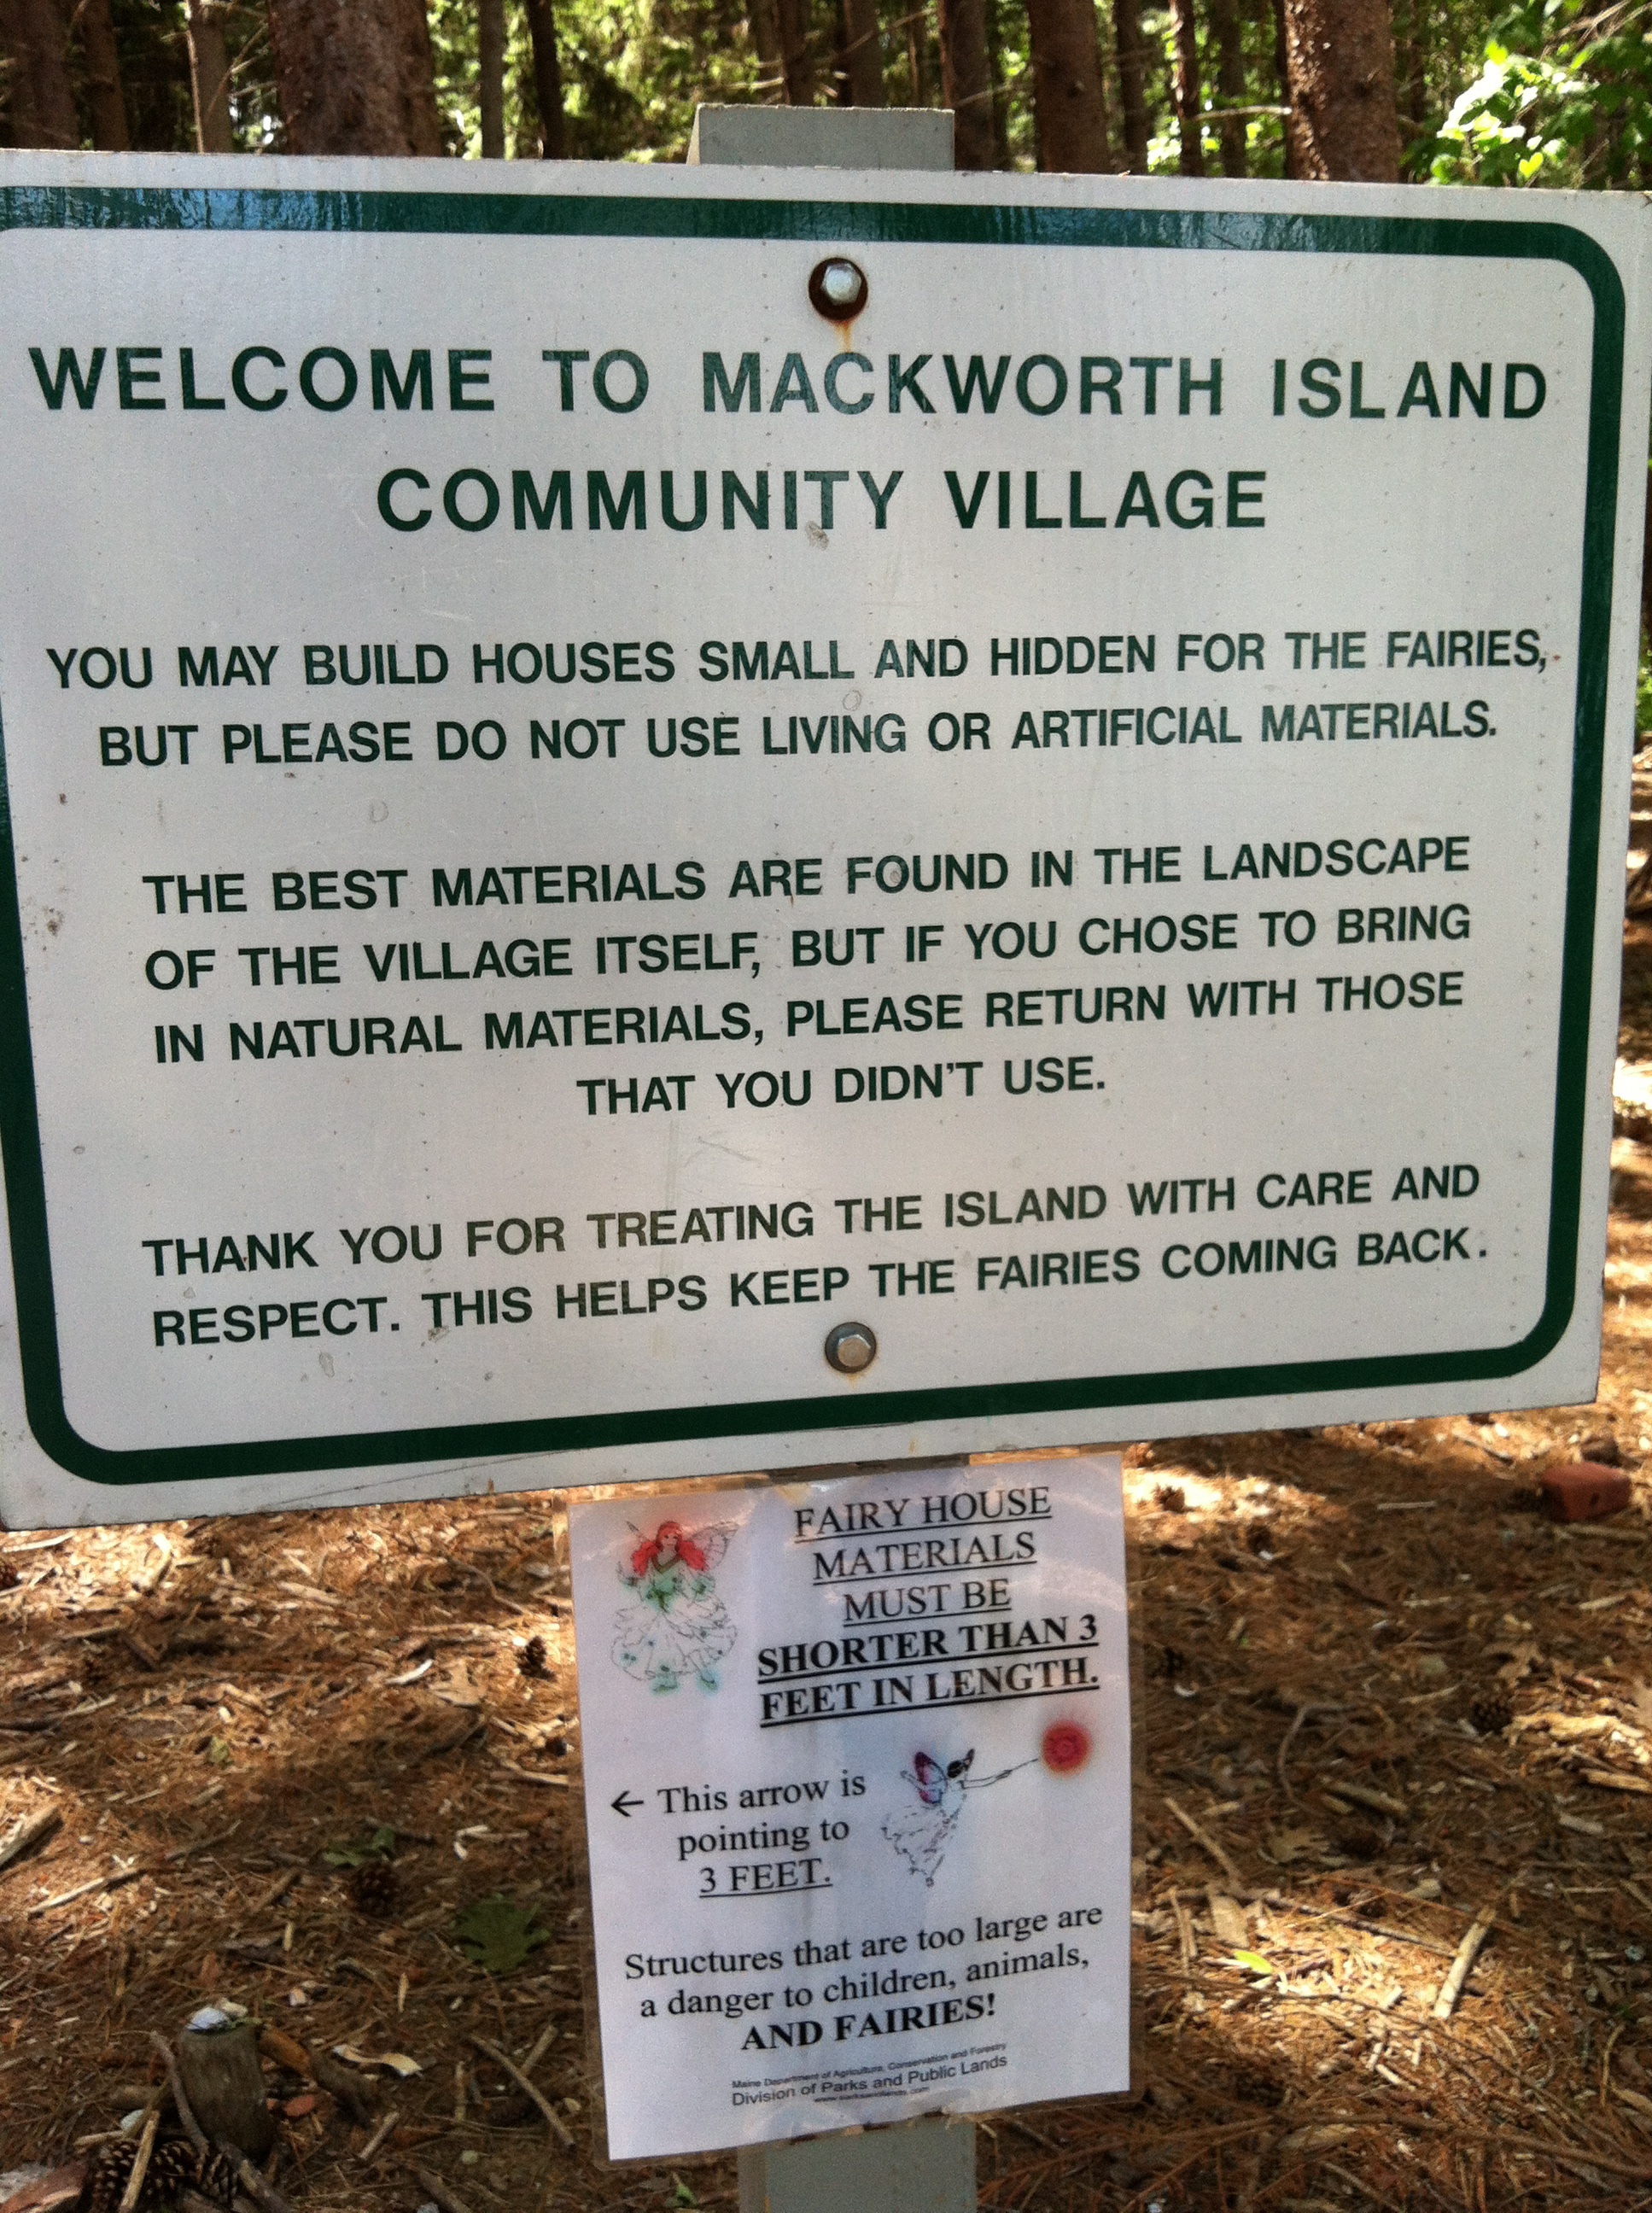 Mackworth Island Fairy Community Welcome